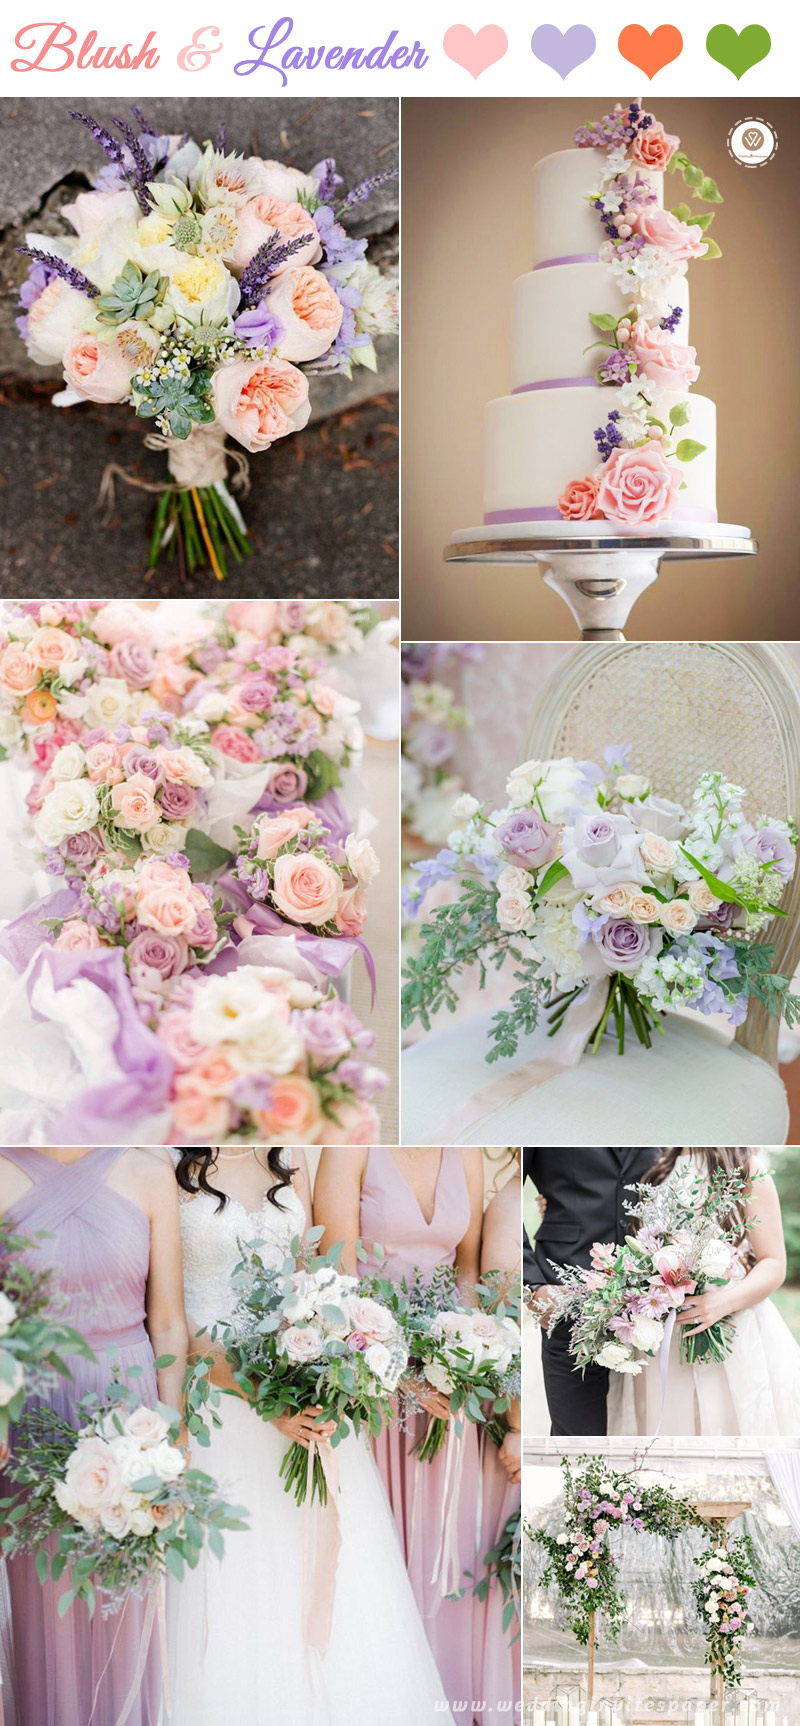 Blush-&-Lavender--,-Spring-Weddings.jpg